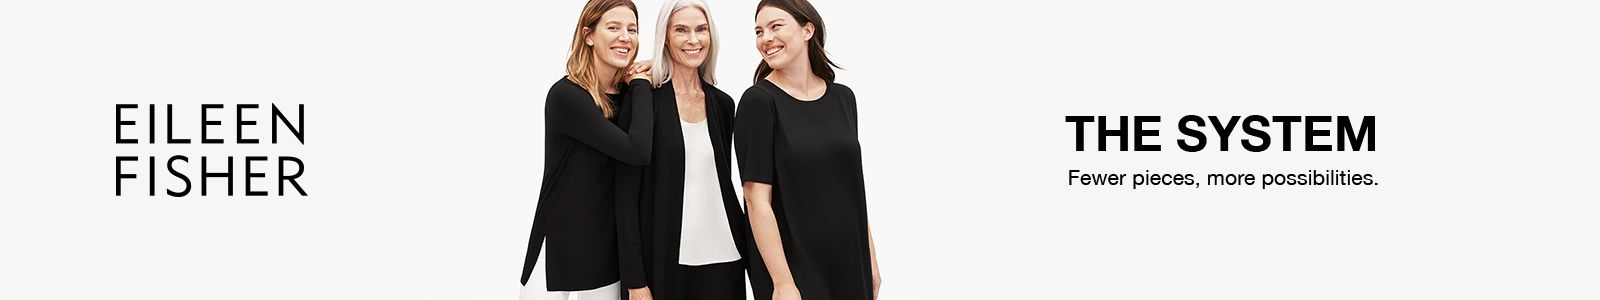 Eileen Fisher, The System